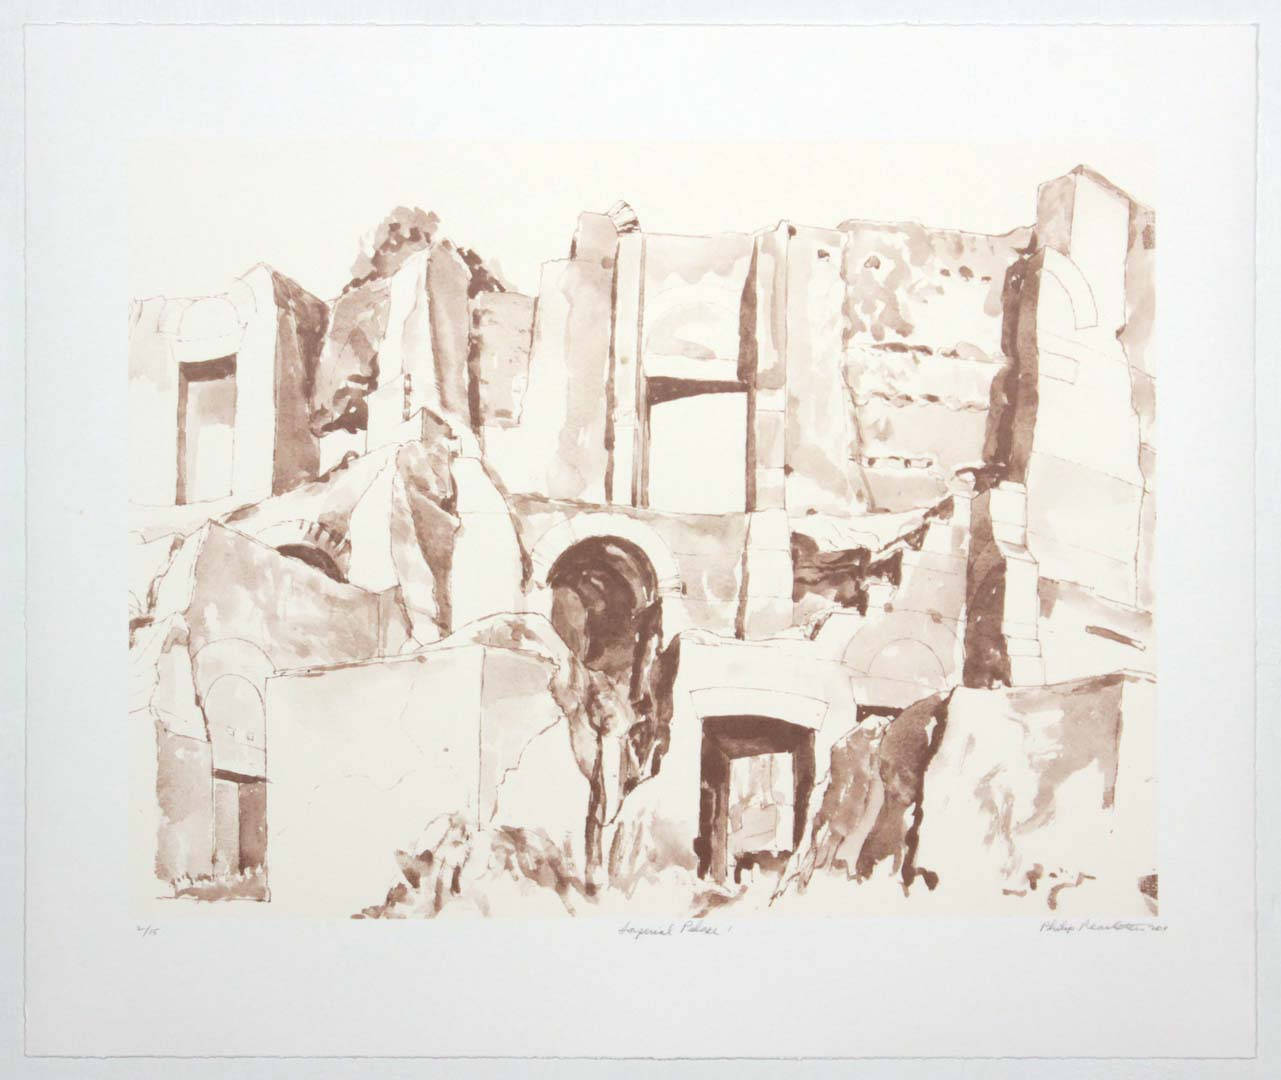 2011 Imperial Palace #1 Lithograph on Paper 20.625 x 24.625